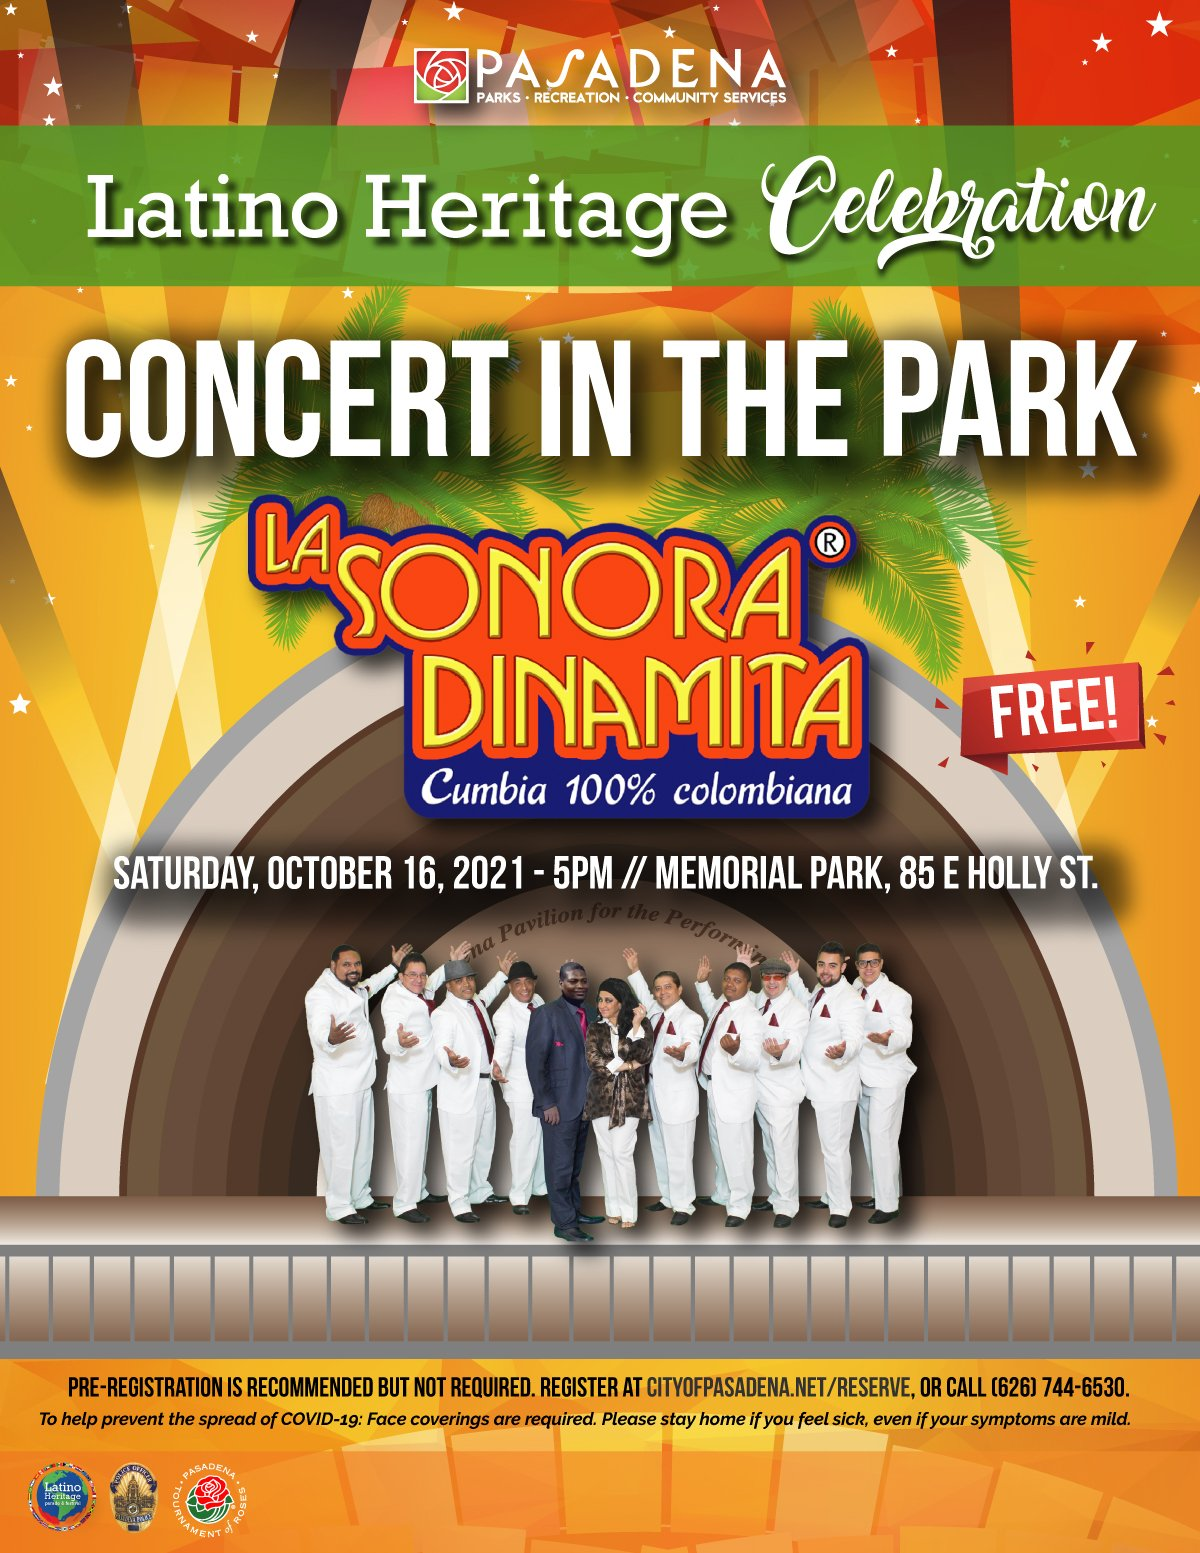 Latino Heritage Celebrations Concert in the Park with La Sonora Dinamita - Free! Saturday, October 16,2021 - 5pm - at Memorial Park, 85 E Holly St. Pre-registration is recommend but not required. Register at www.cityofpasadena.net/reserve or call (626) 744-6530.